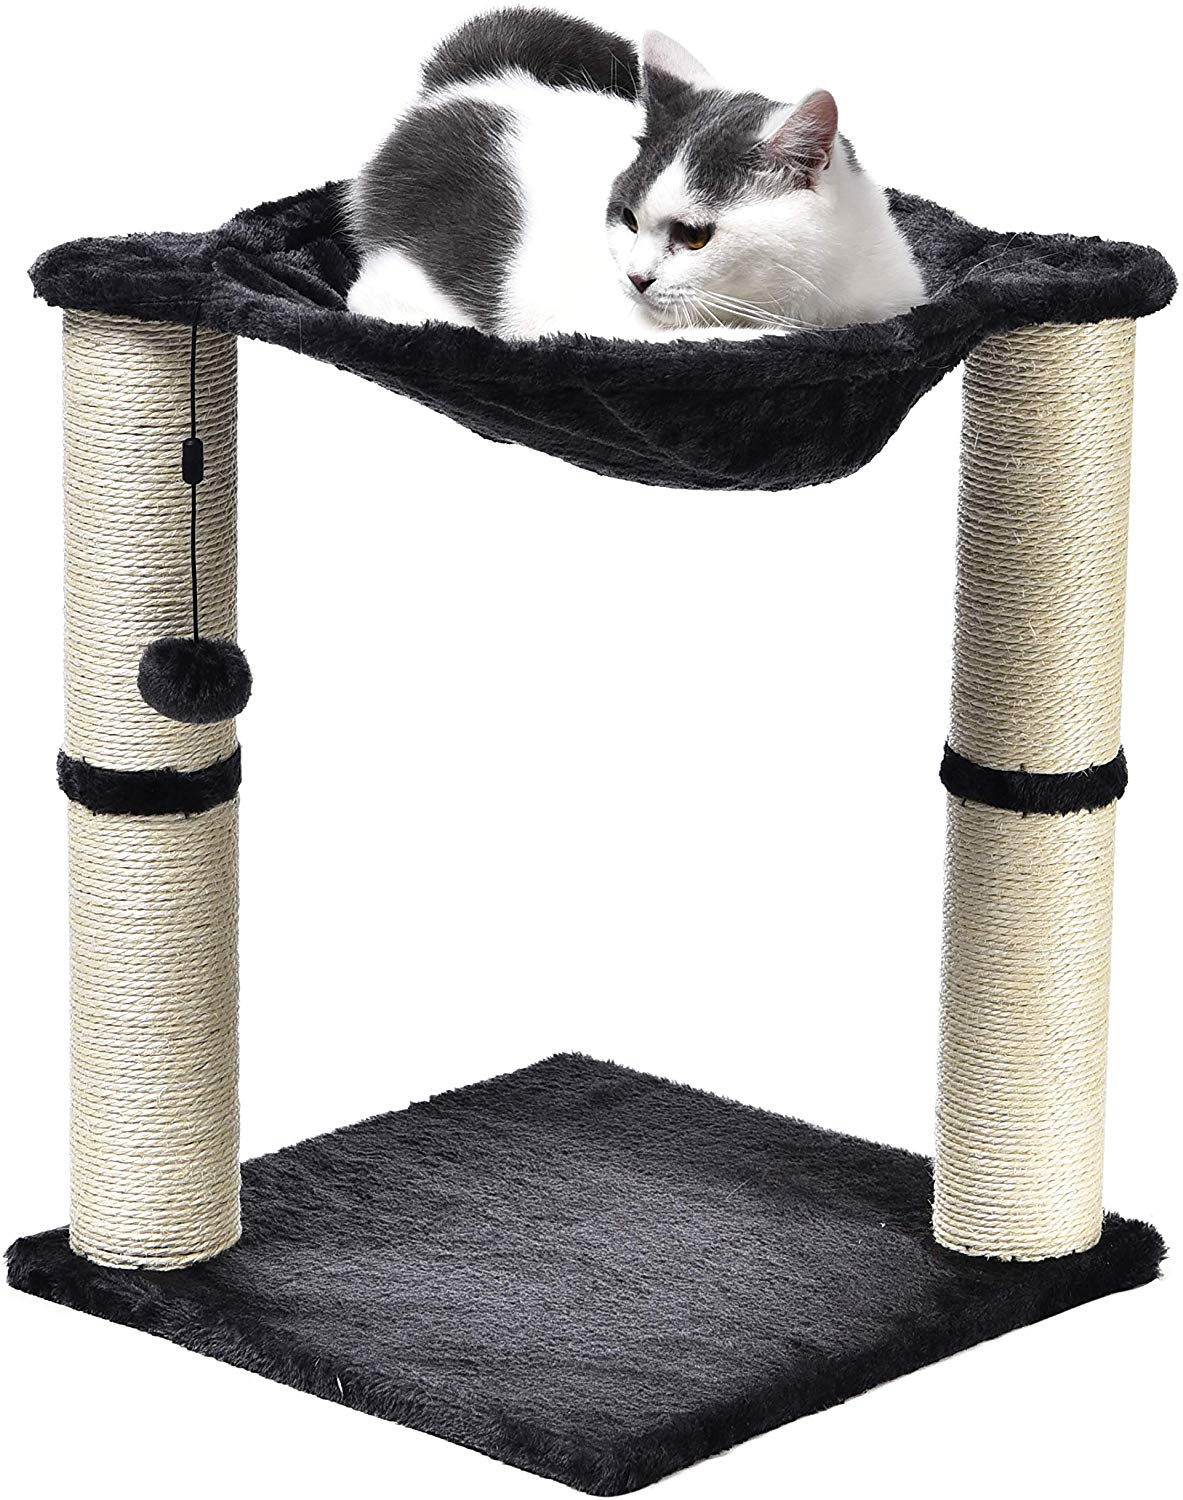 Amazon Basics Cat Hammock